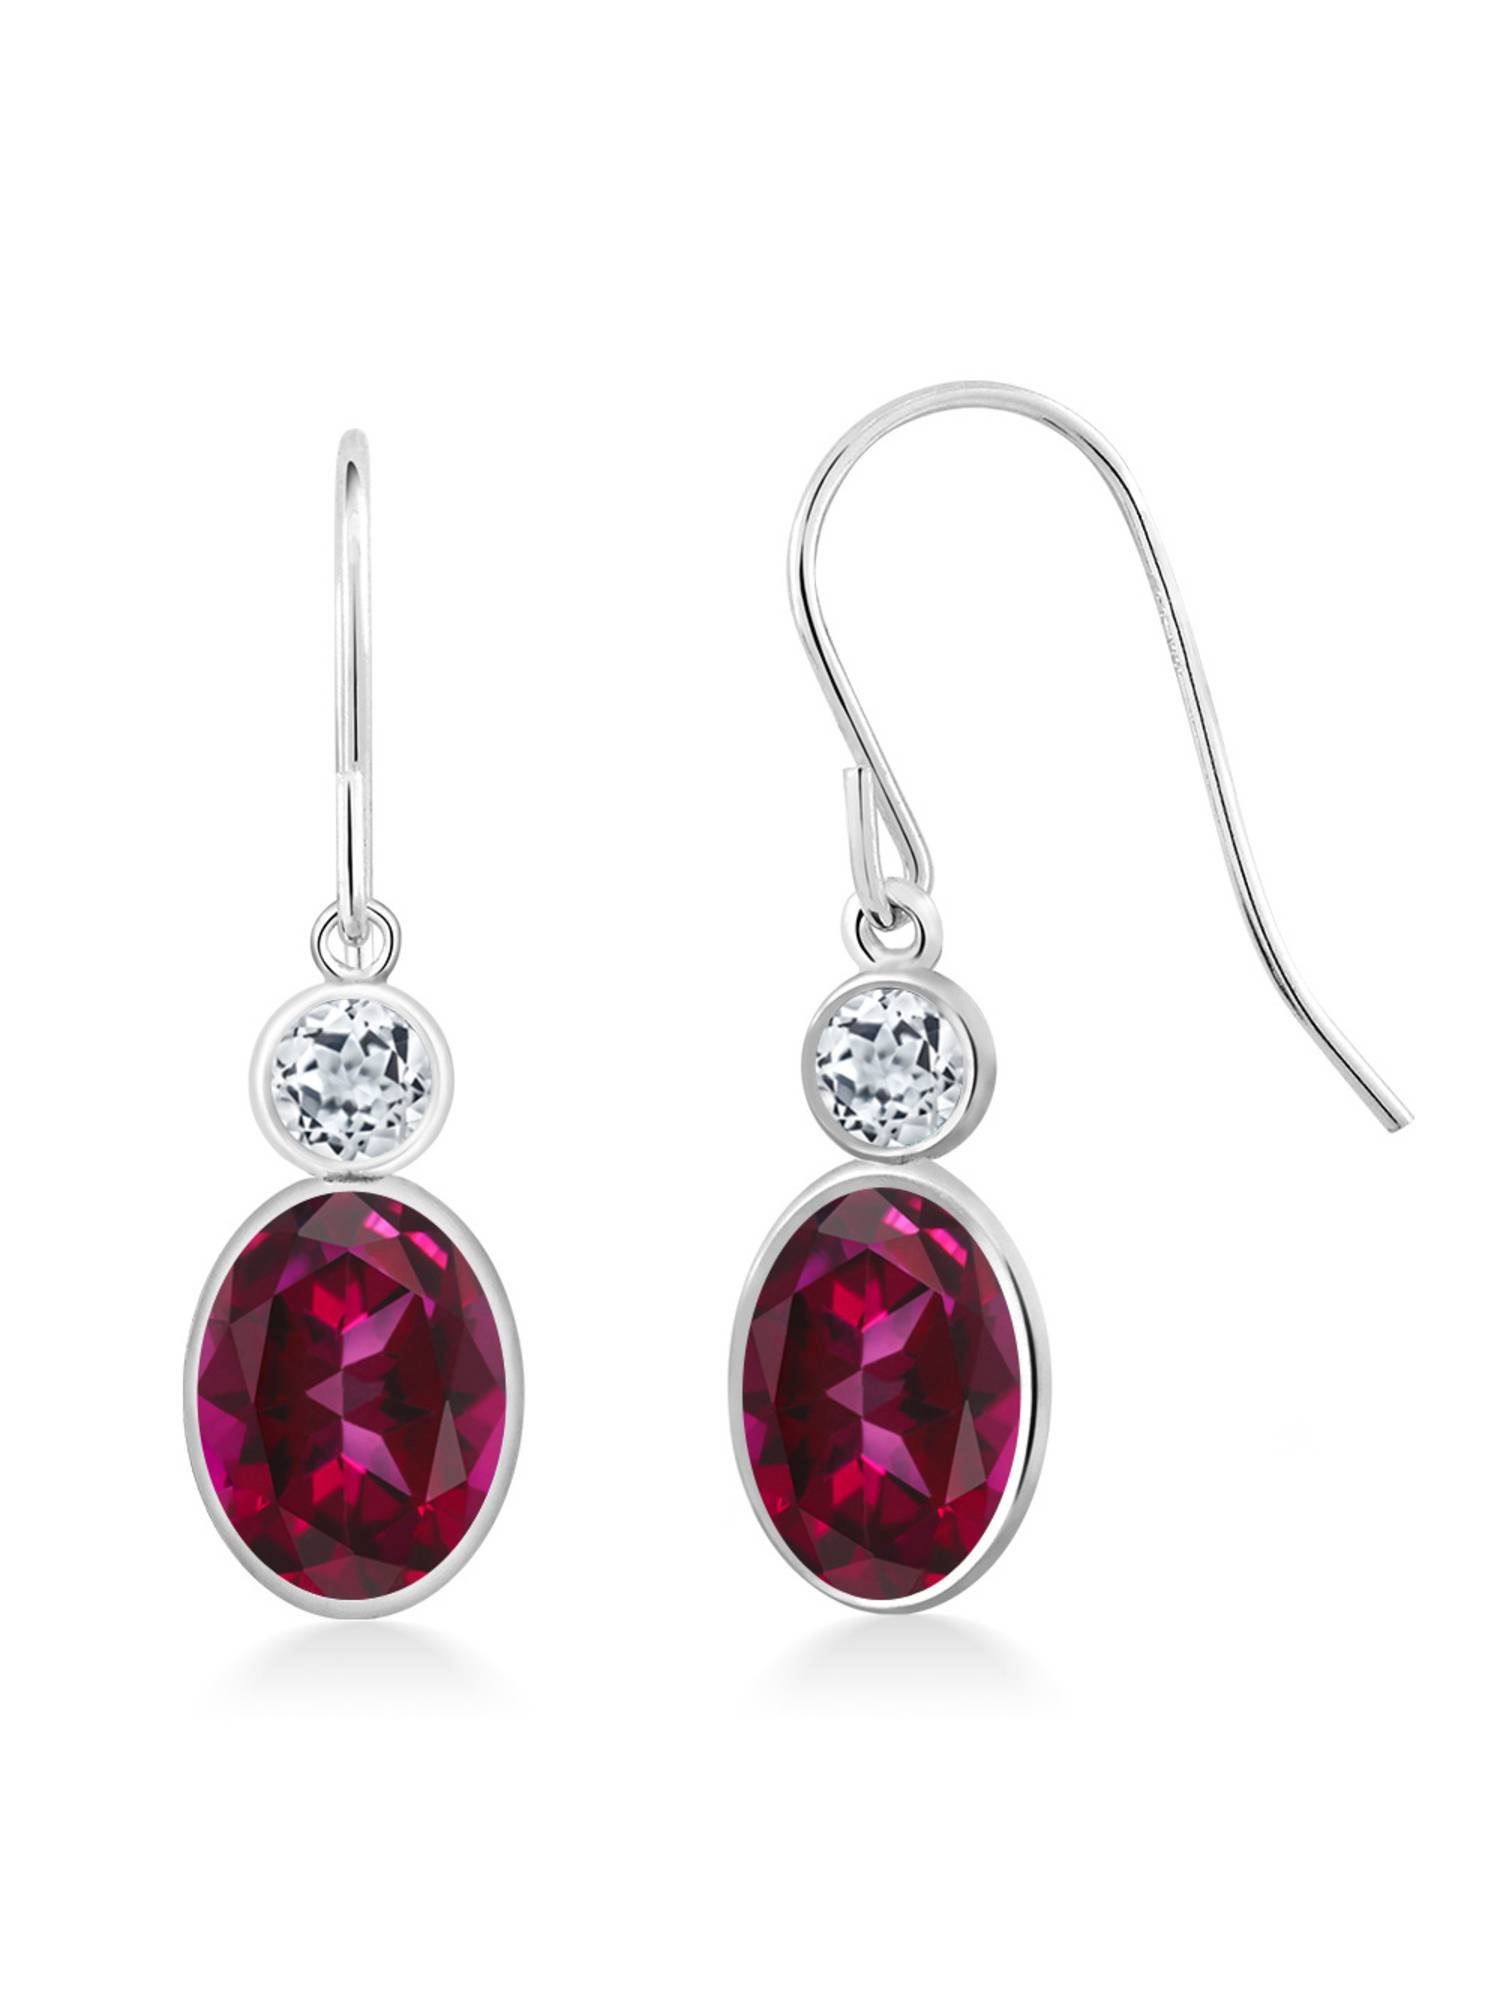 14K White Gold Earrings Topaz Set with Oval Blazing Red Topaz from Swarovski by